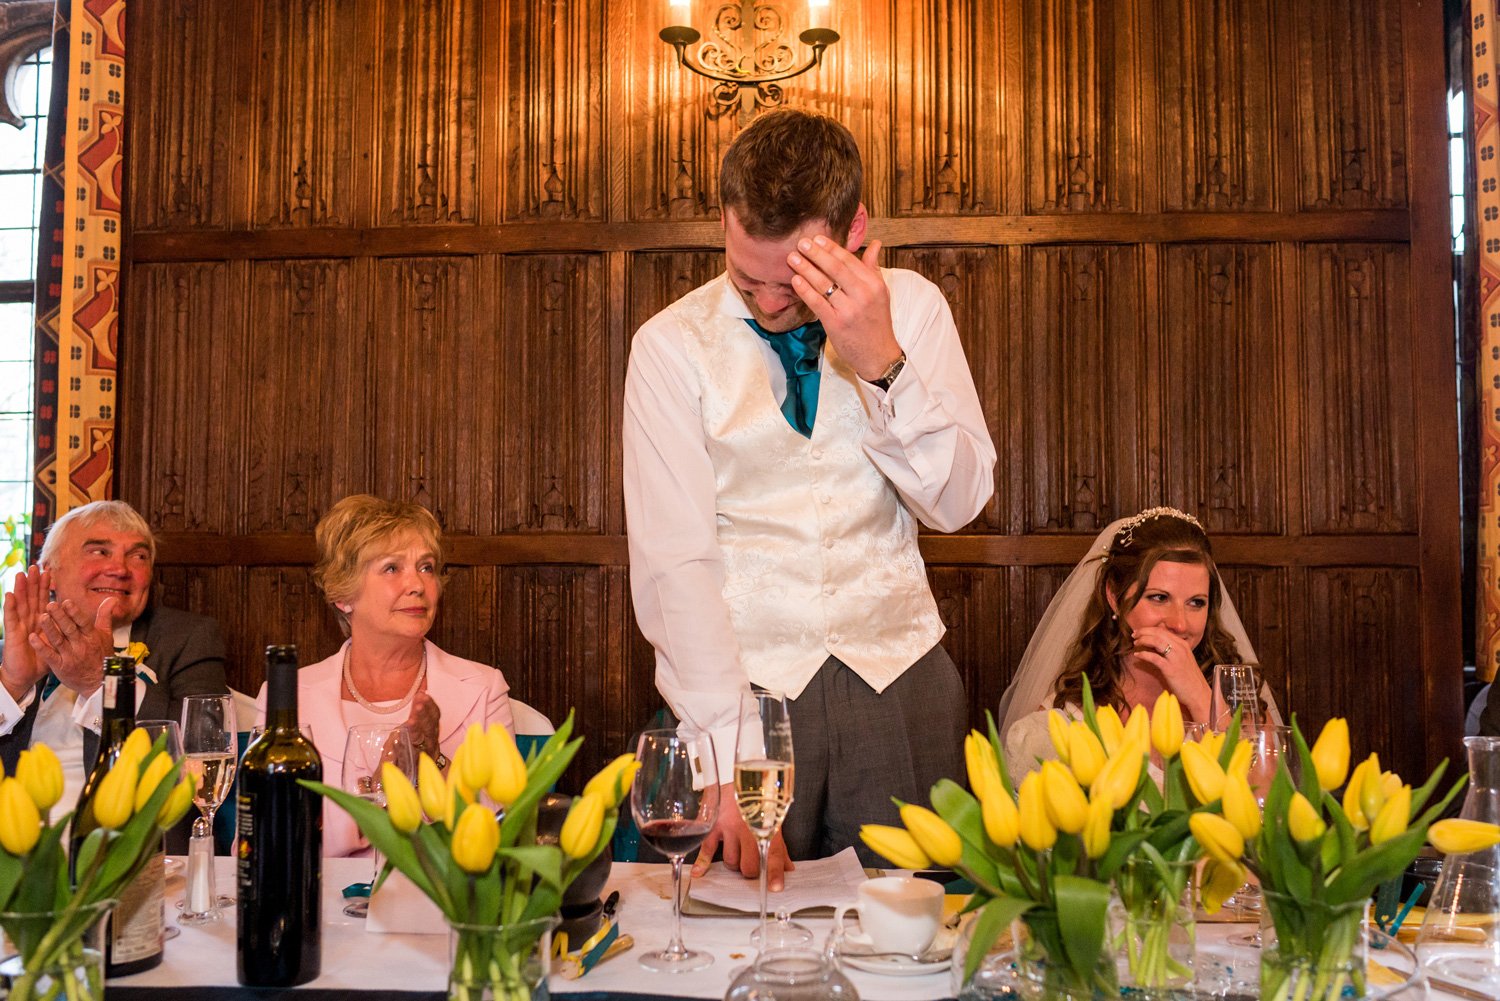 tearful groom